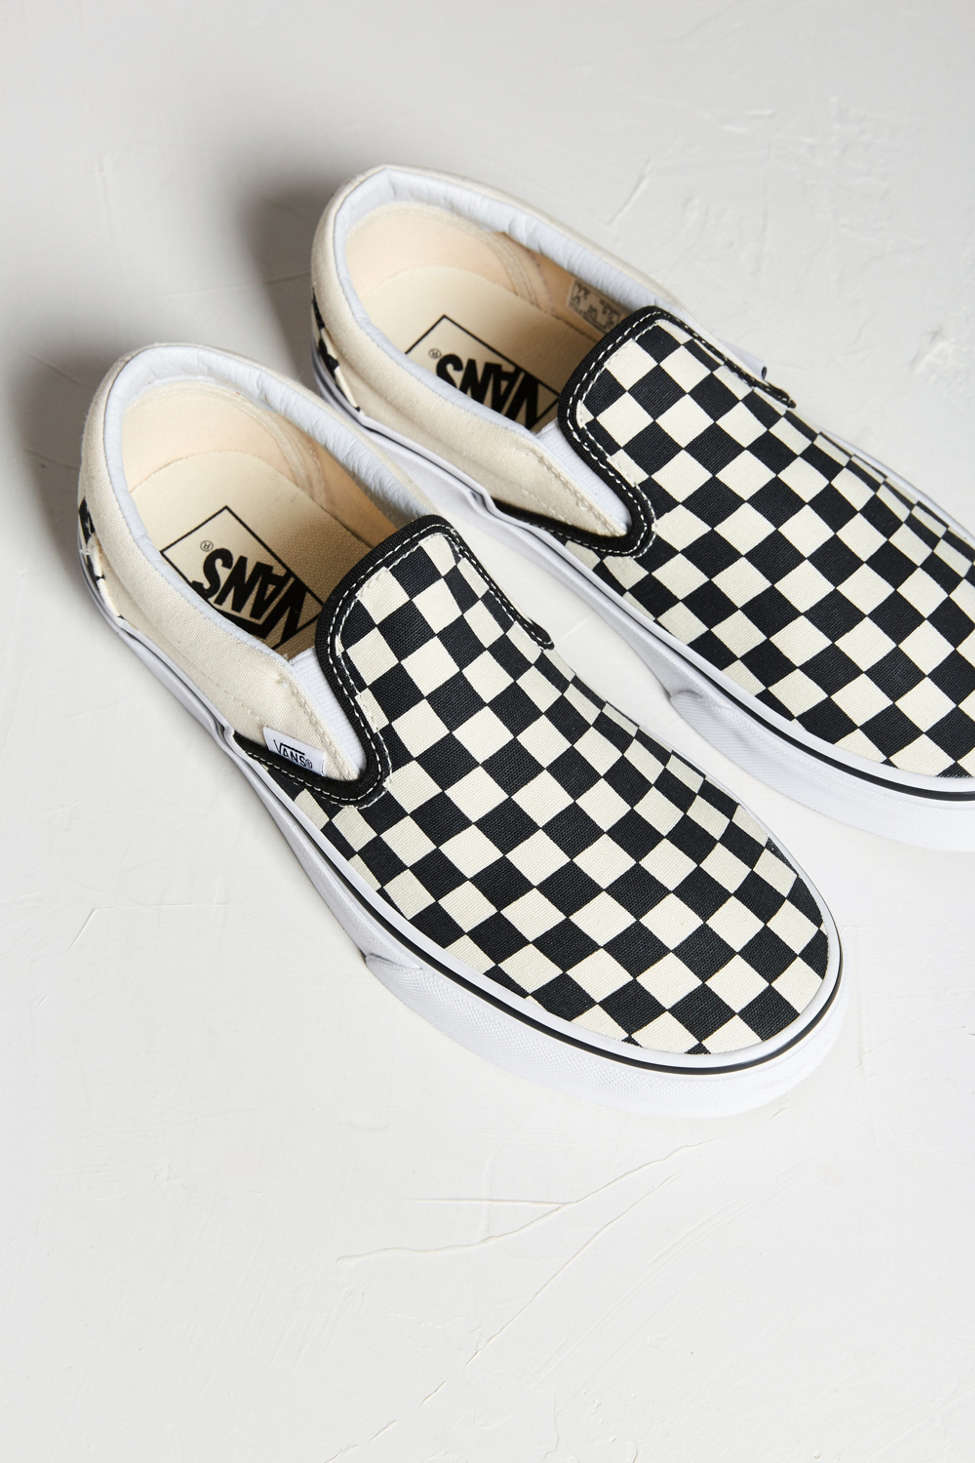 Slide View: 2: Vans Checkerboard Slip-On Sneaker